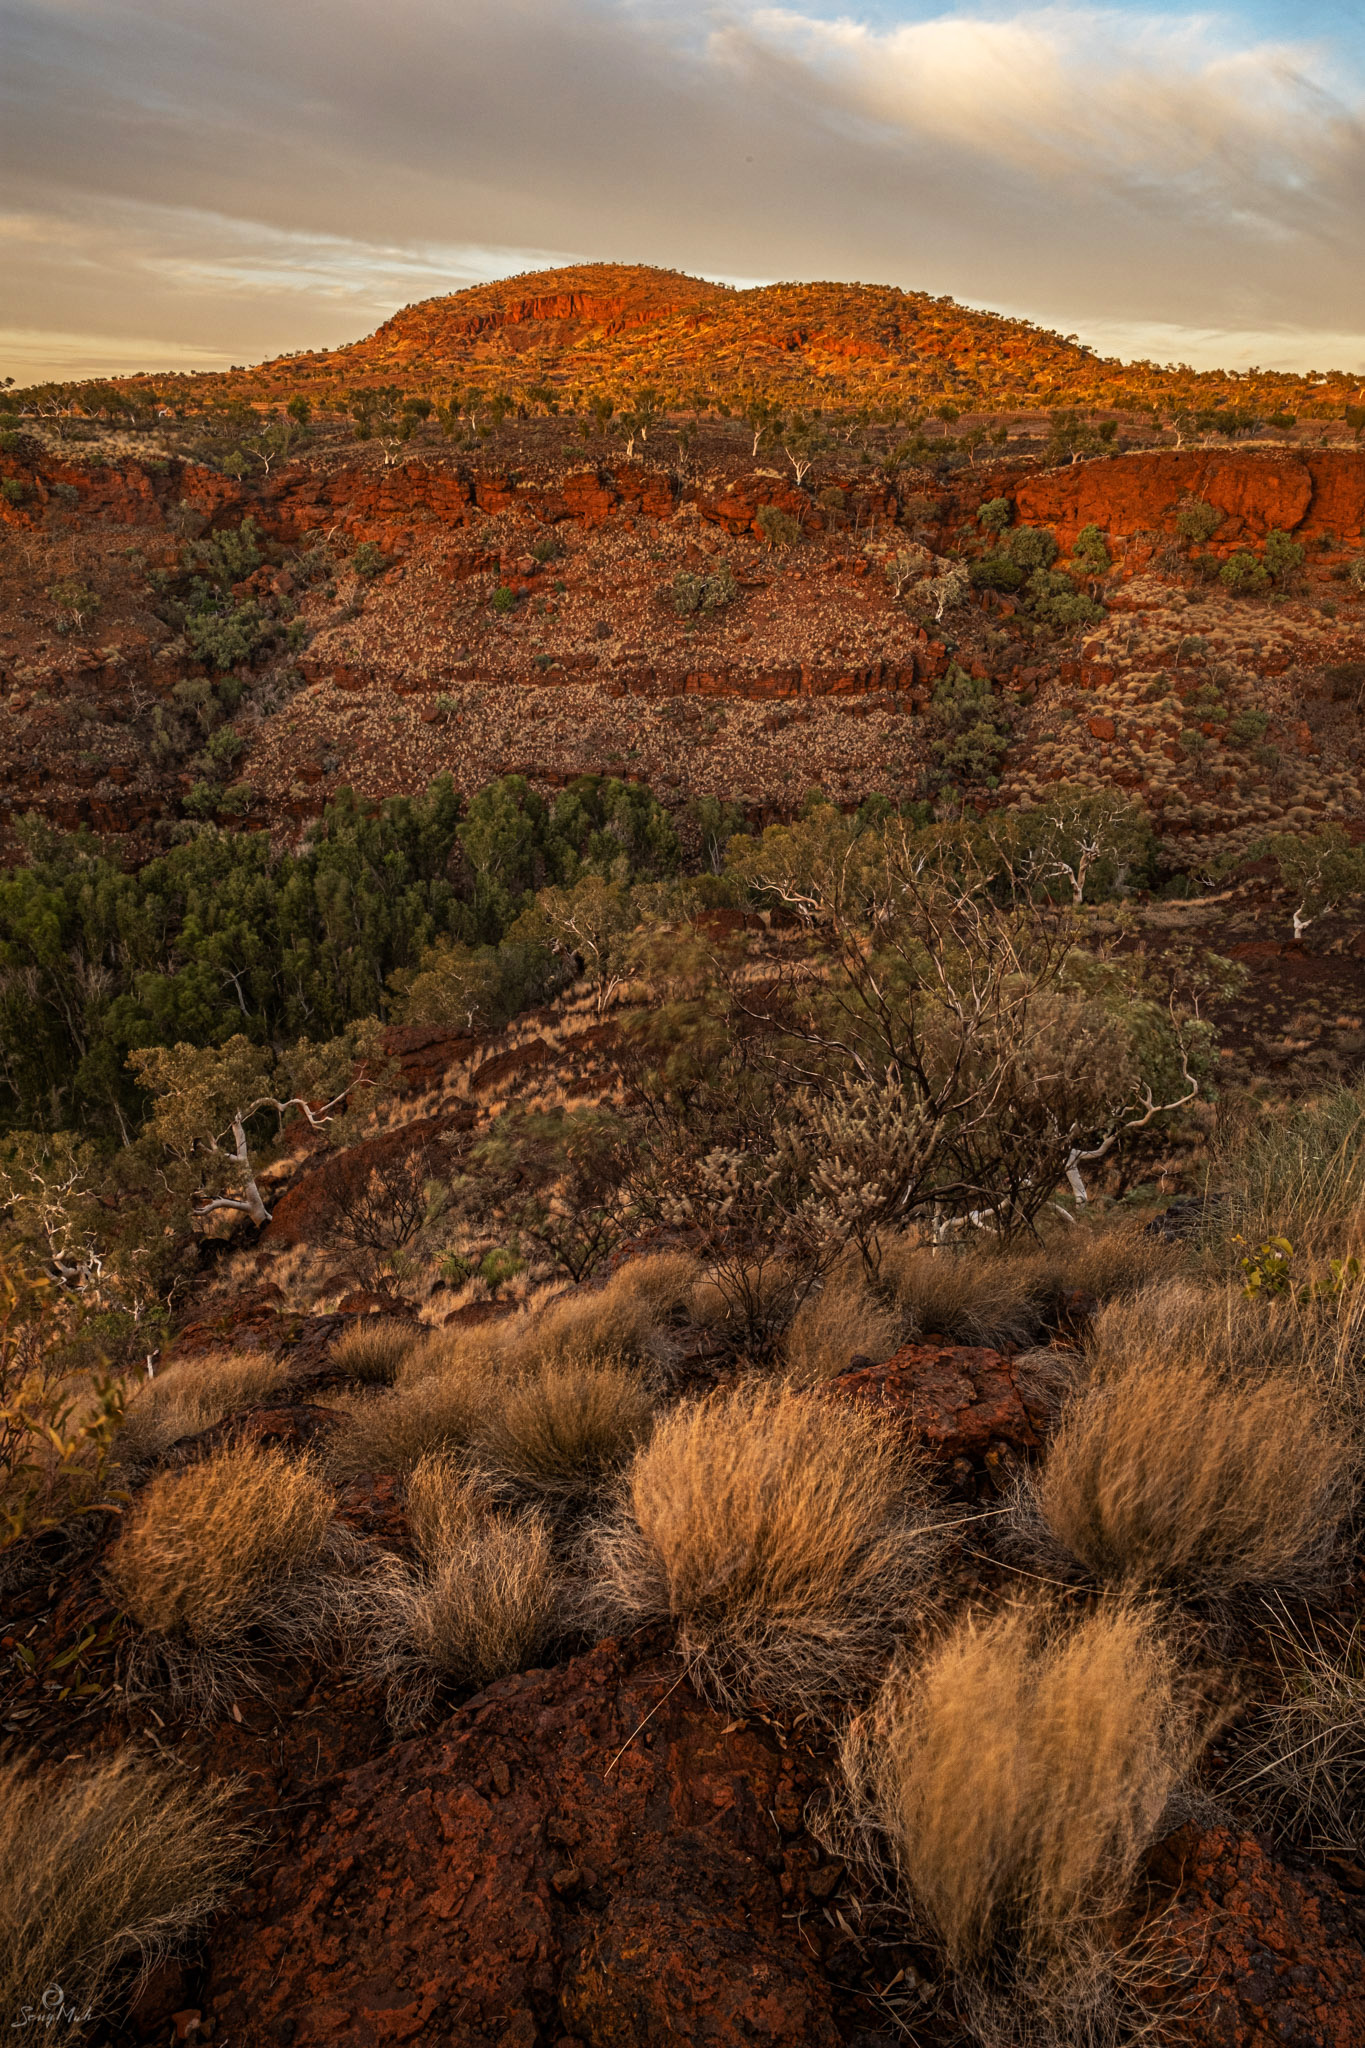 Dales Gorge Lookout